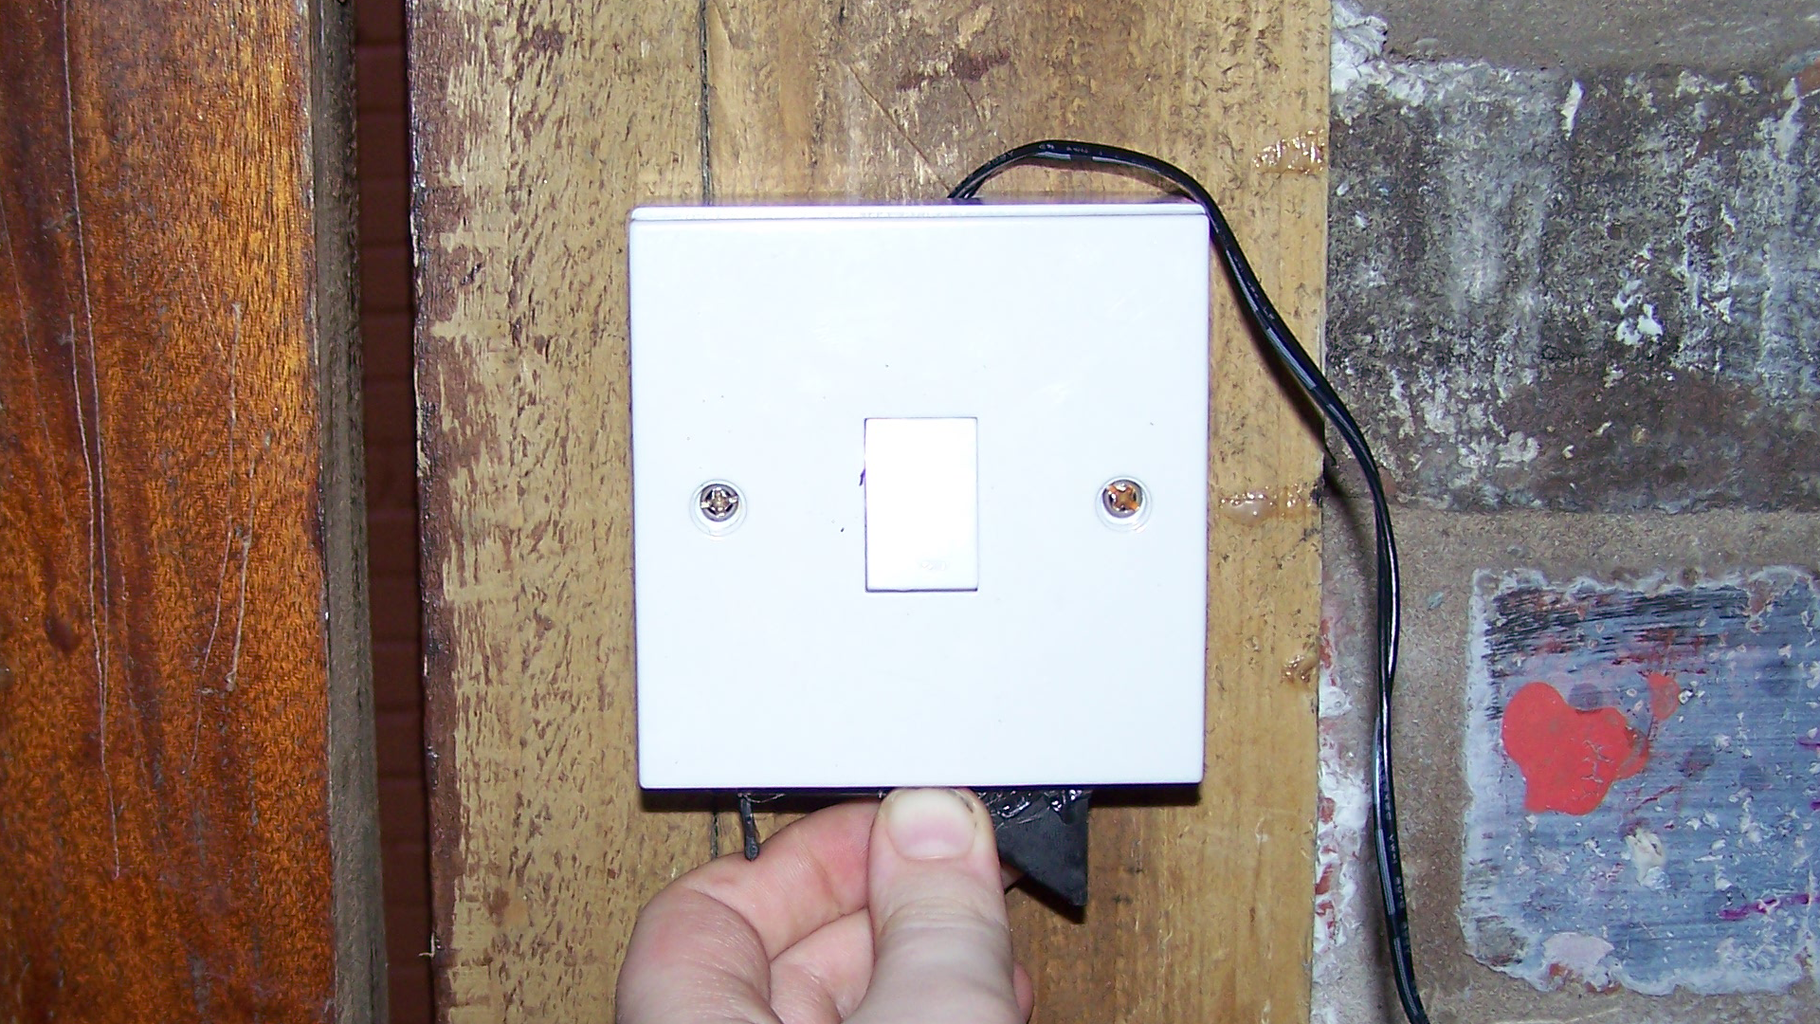 Installing the Light Switch